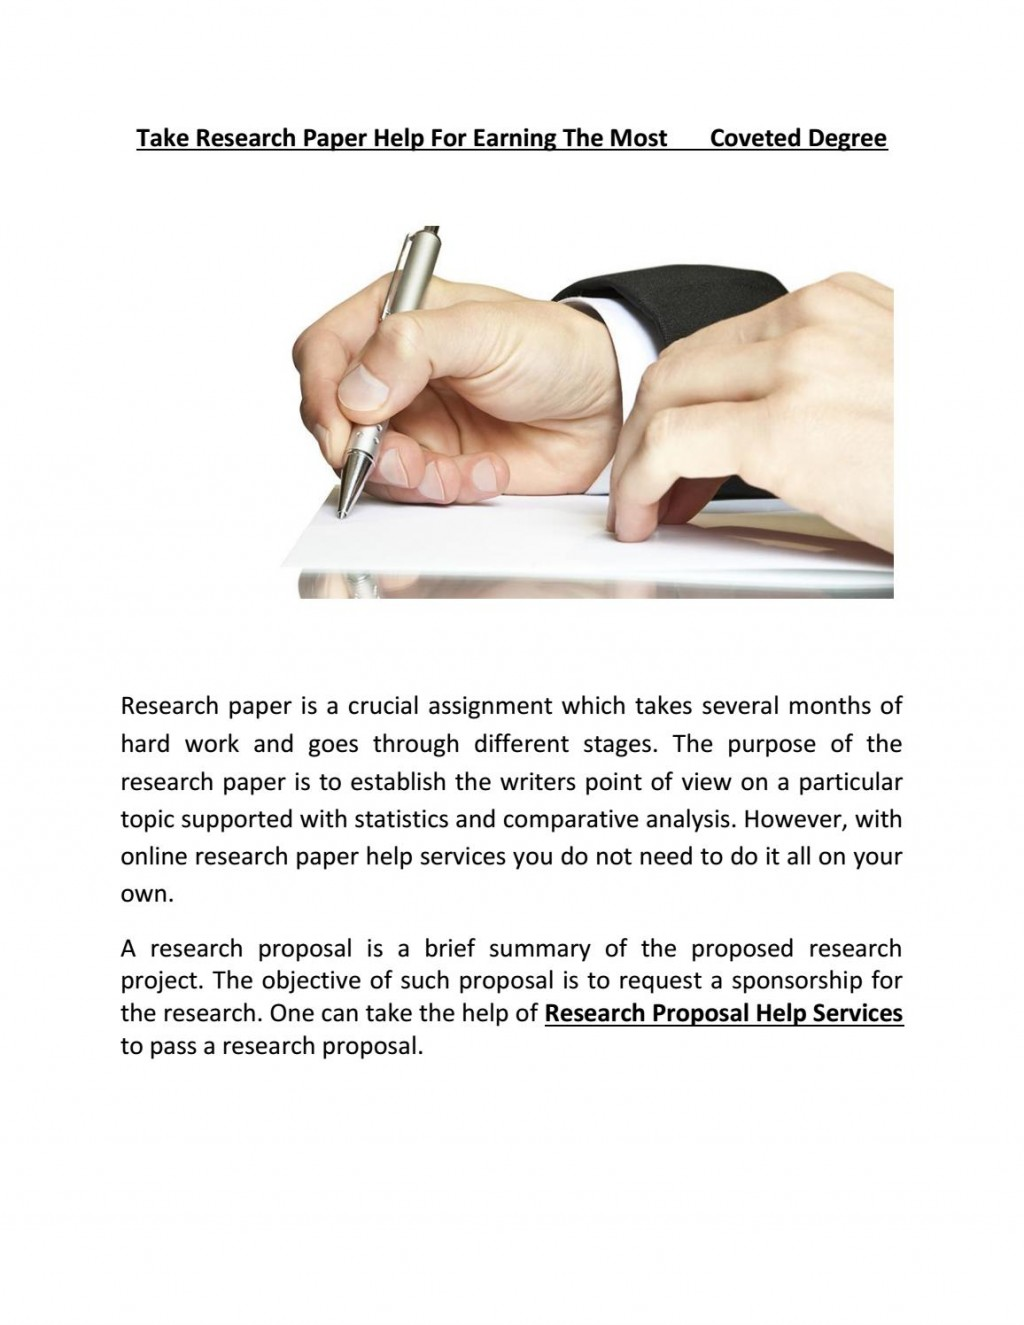 014 Research Paper Help Page 1 Surprising Writing Service Reviews Online Free Large